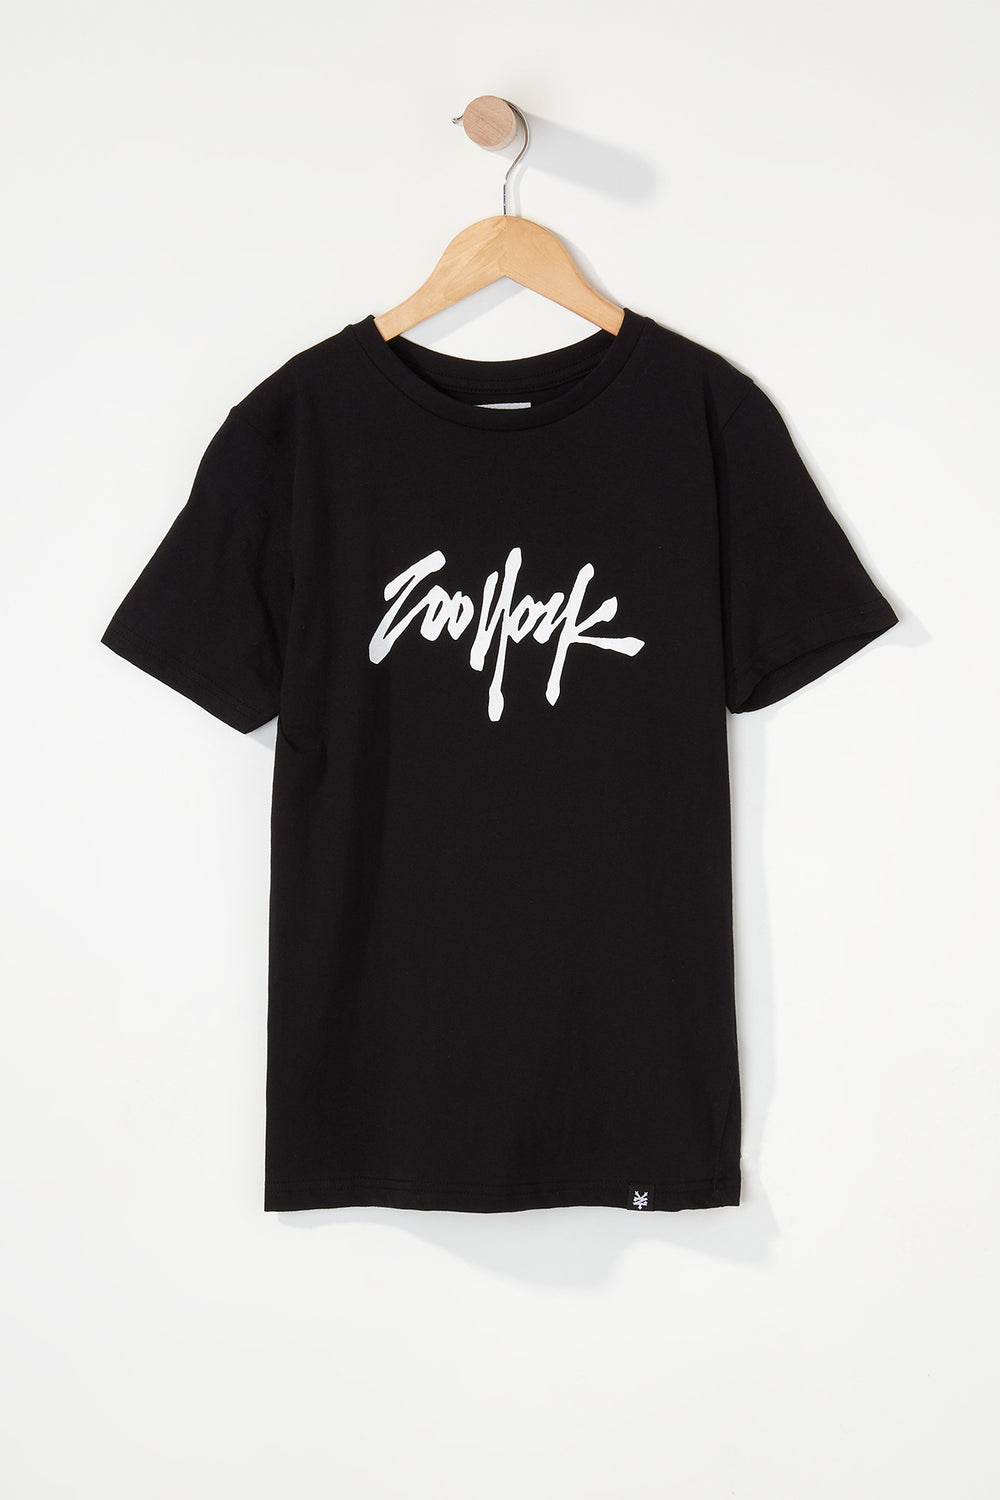 Zoo York Boys NYC 5 Boroughs T-Shirt Black